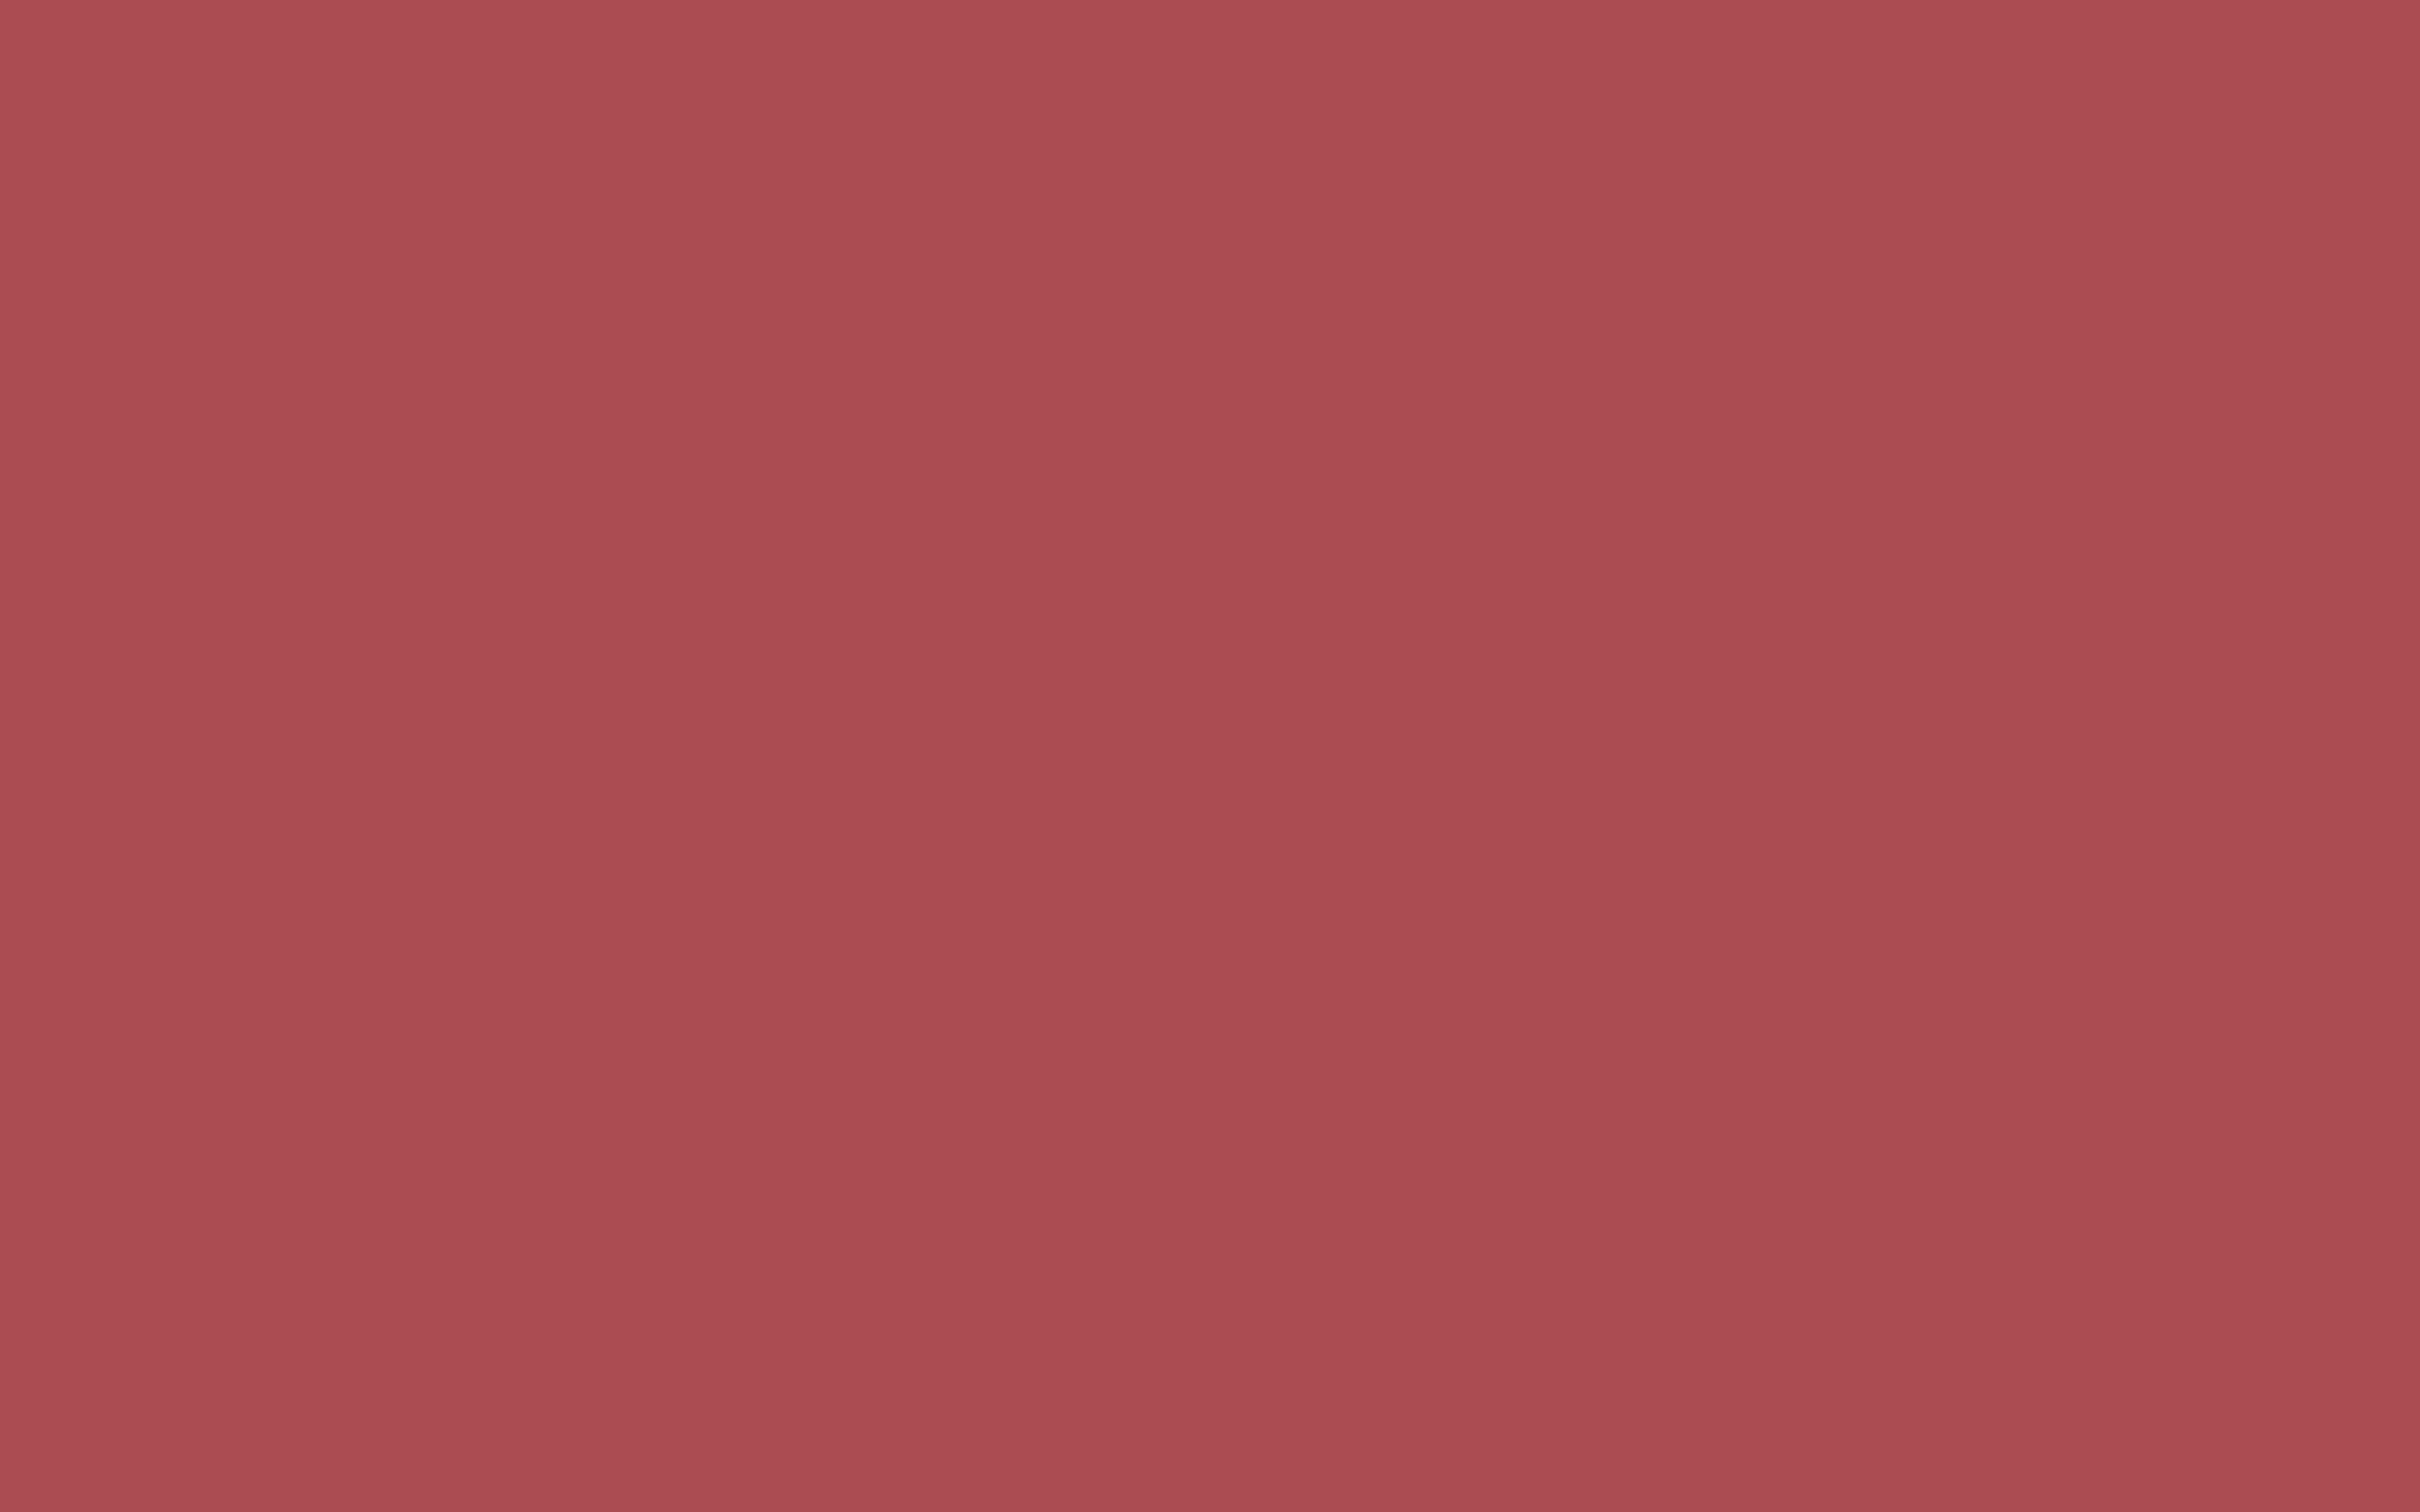 2880x1800 English Red Solid Color Background